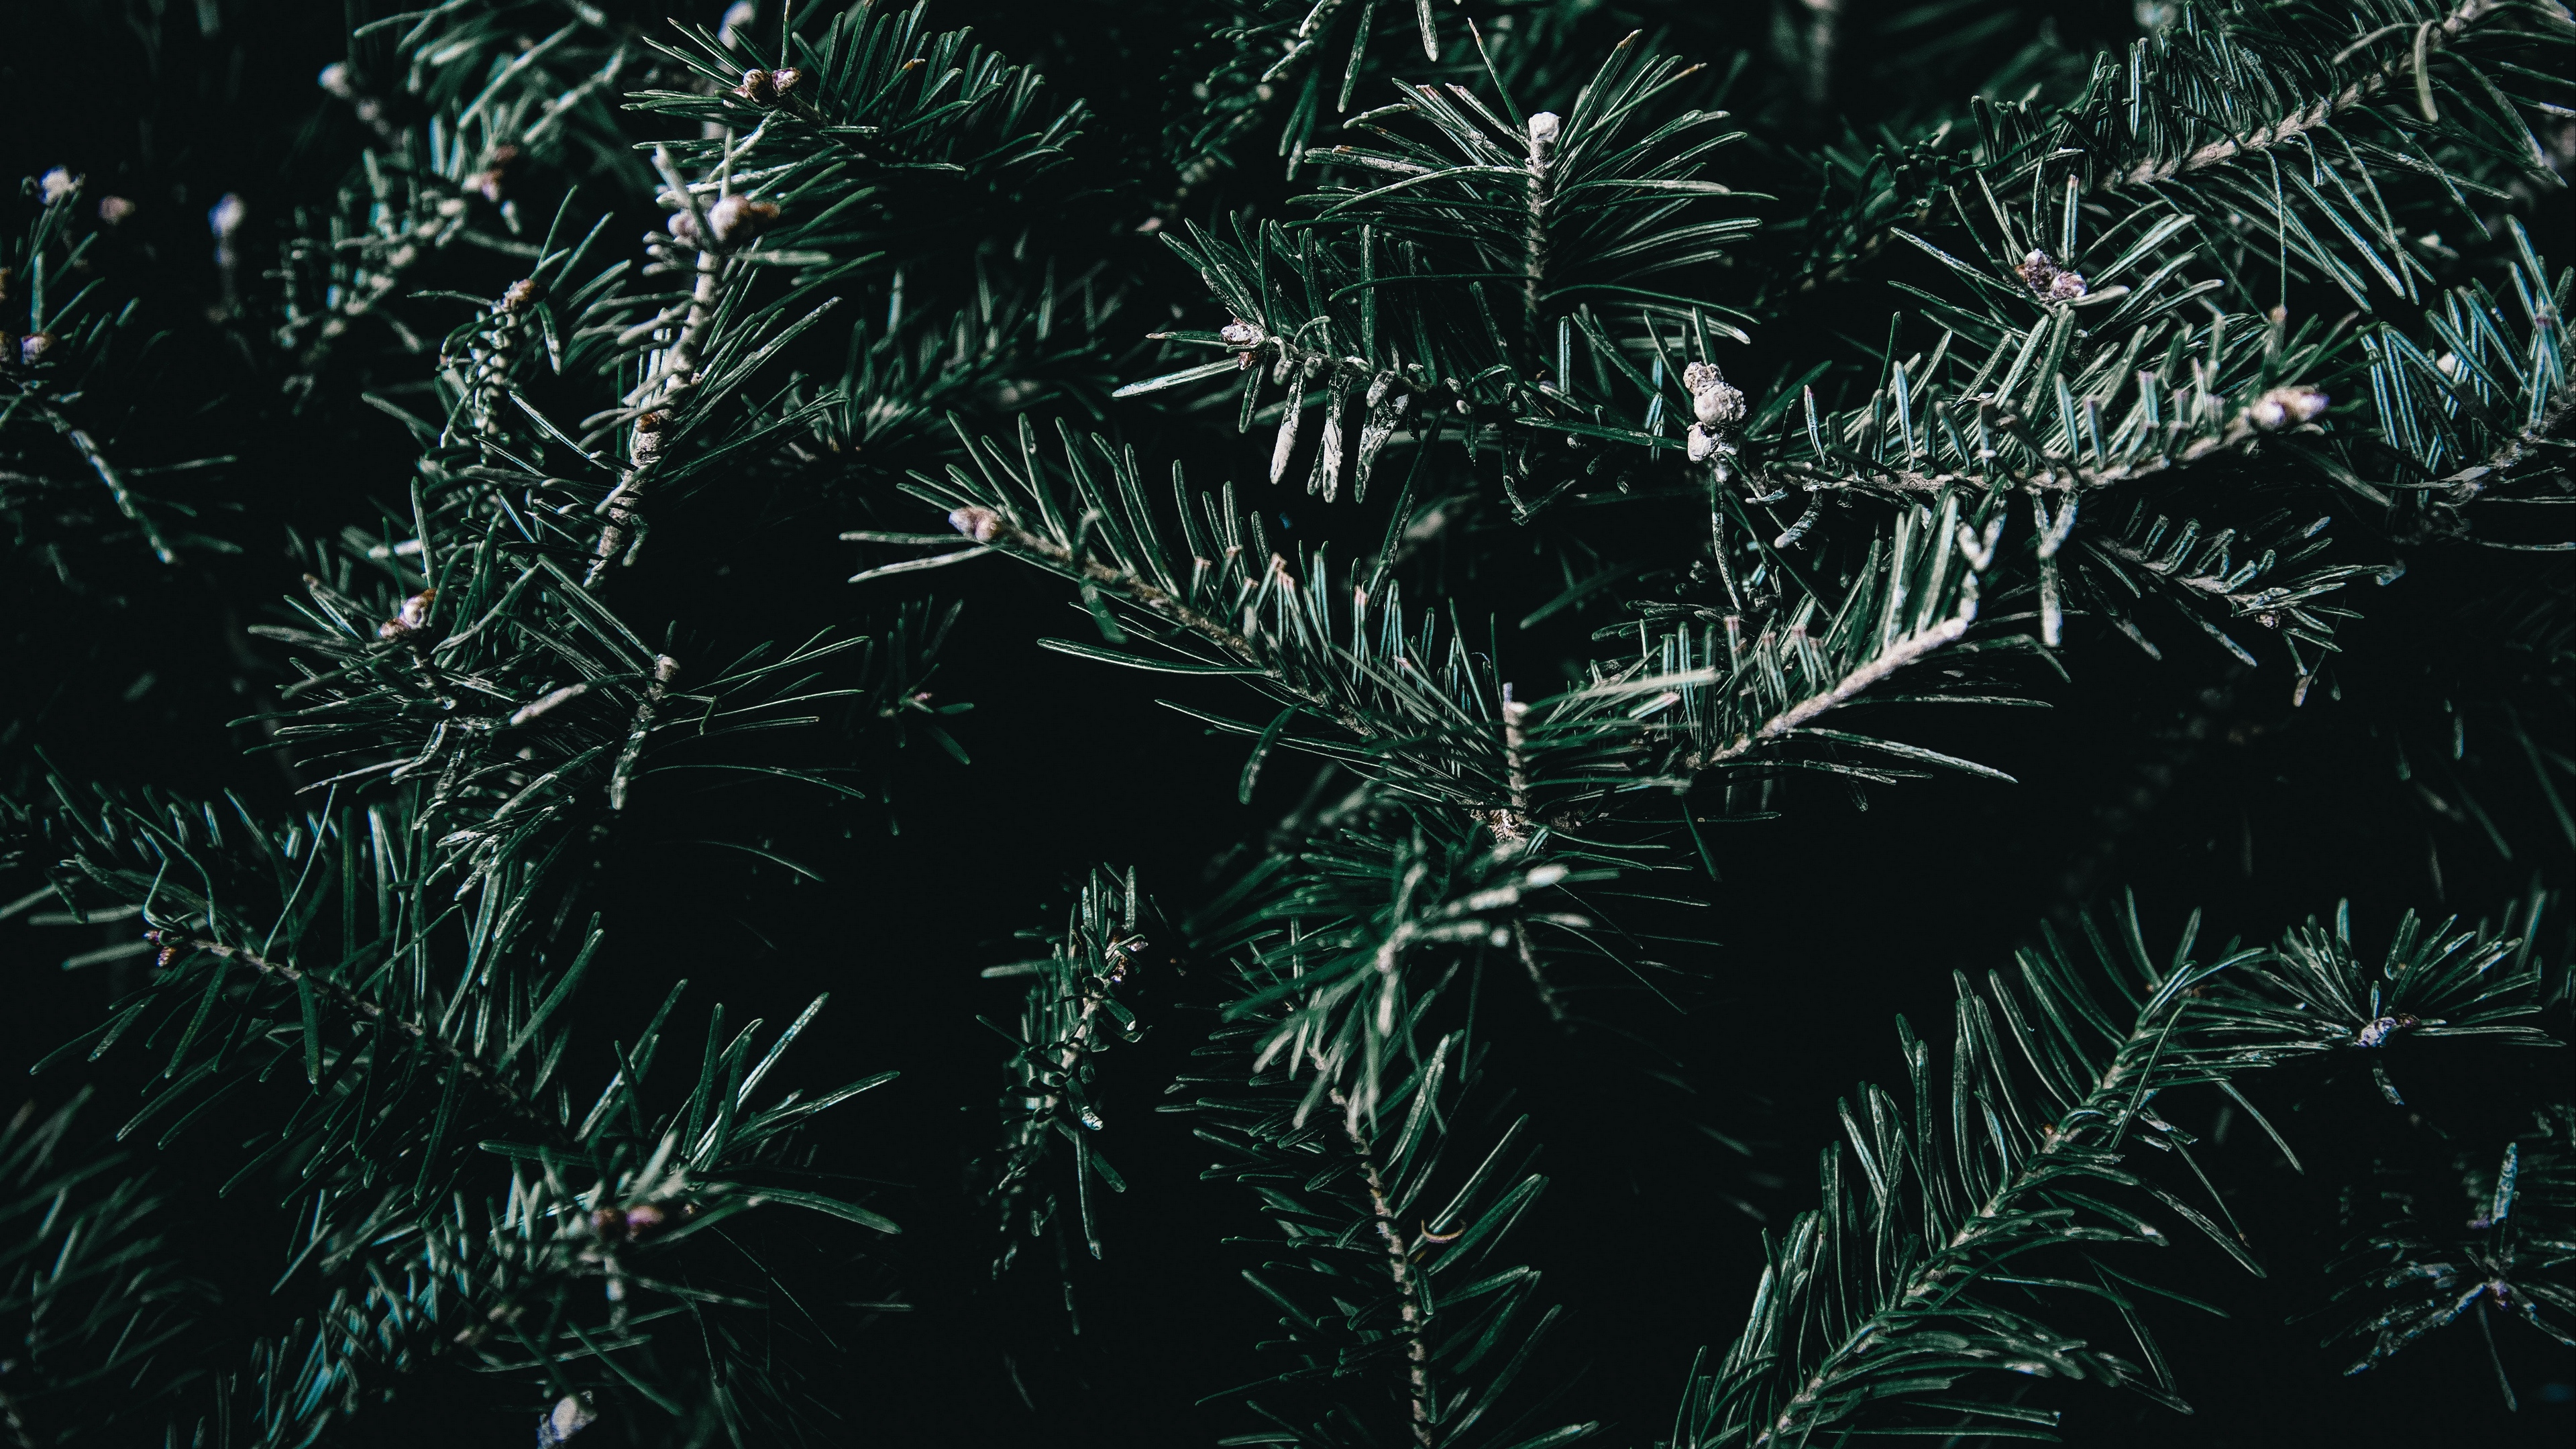 spruce branches spines 4k 1541116607 - spruce, branches, spines 4k - spruce, spines, branches